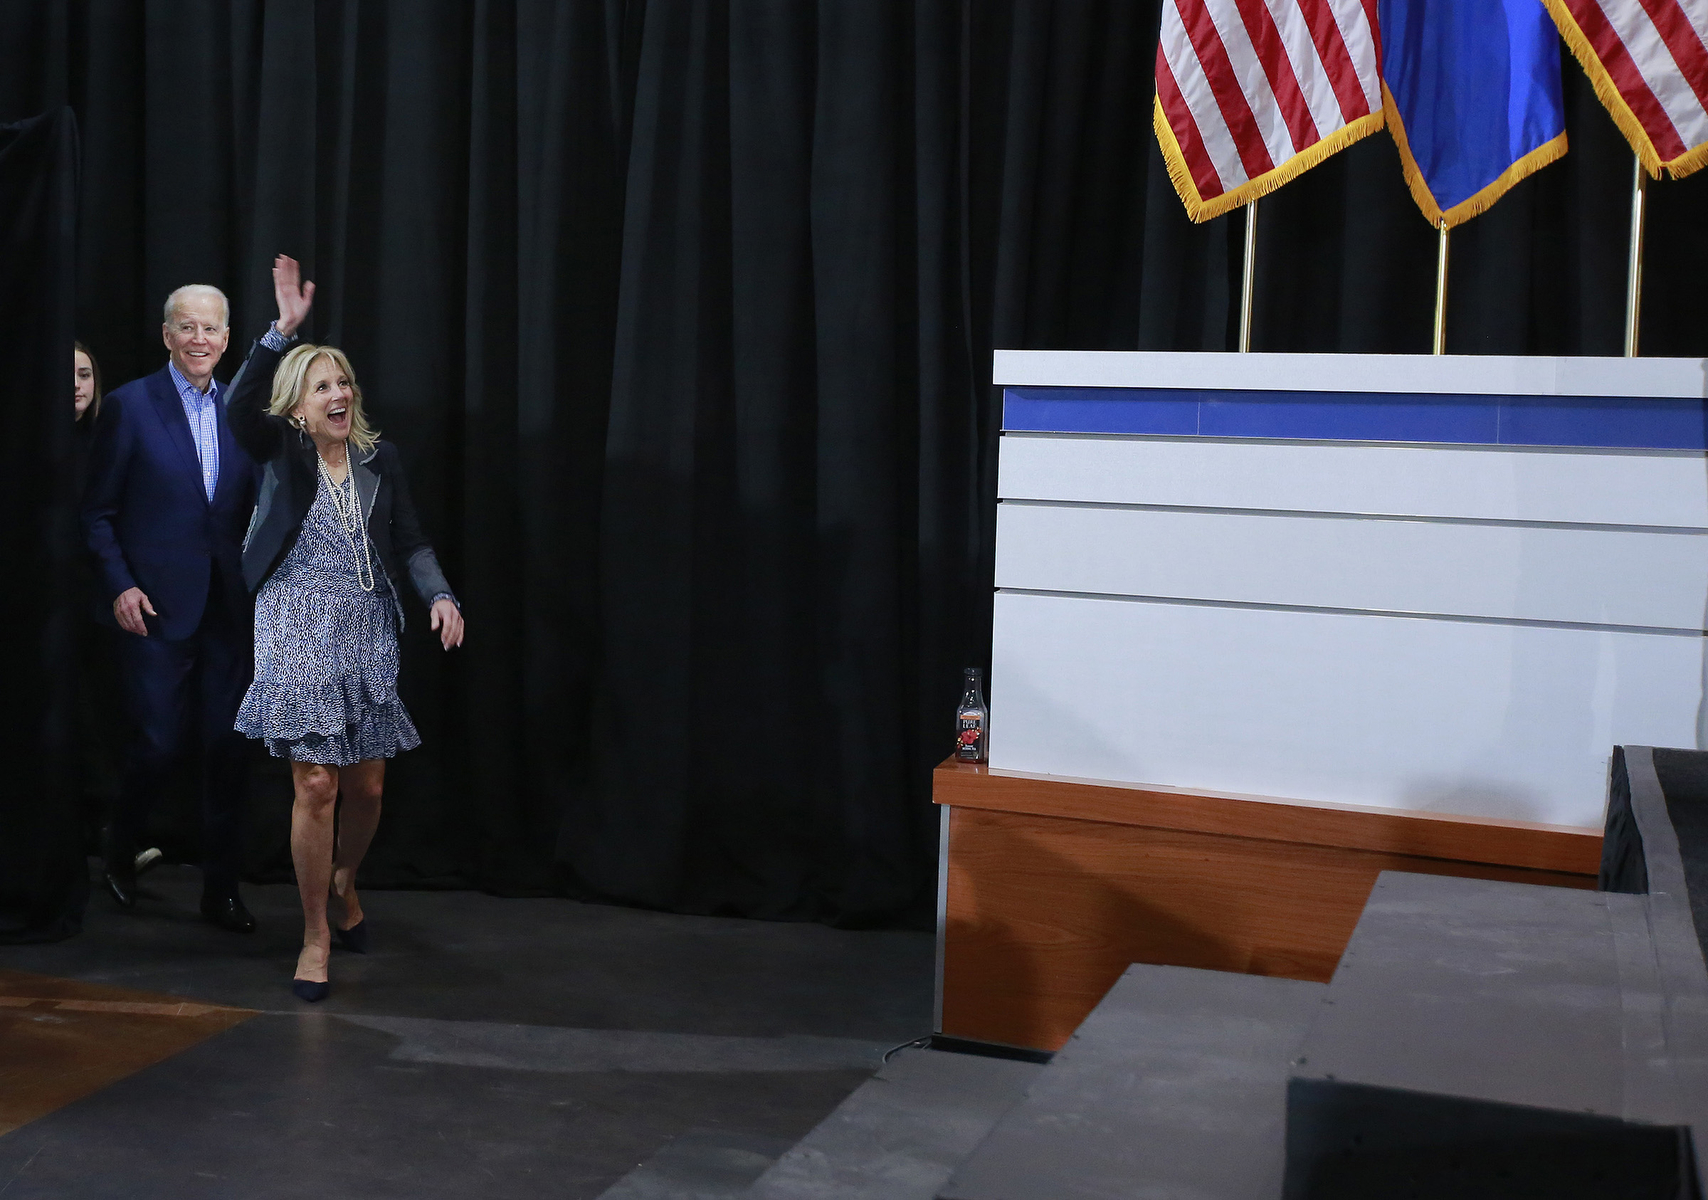 Democratic presidential candidate and former Vice President Joe Biden, left, enters with wife Jill during a Nevada Caucus watch party Saturday, Feb. 22, 2020, in Las Vegas. (Photo by Ronda Churchill/AFP)